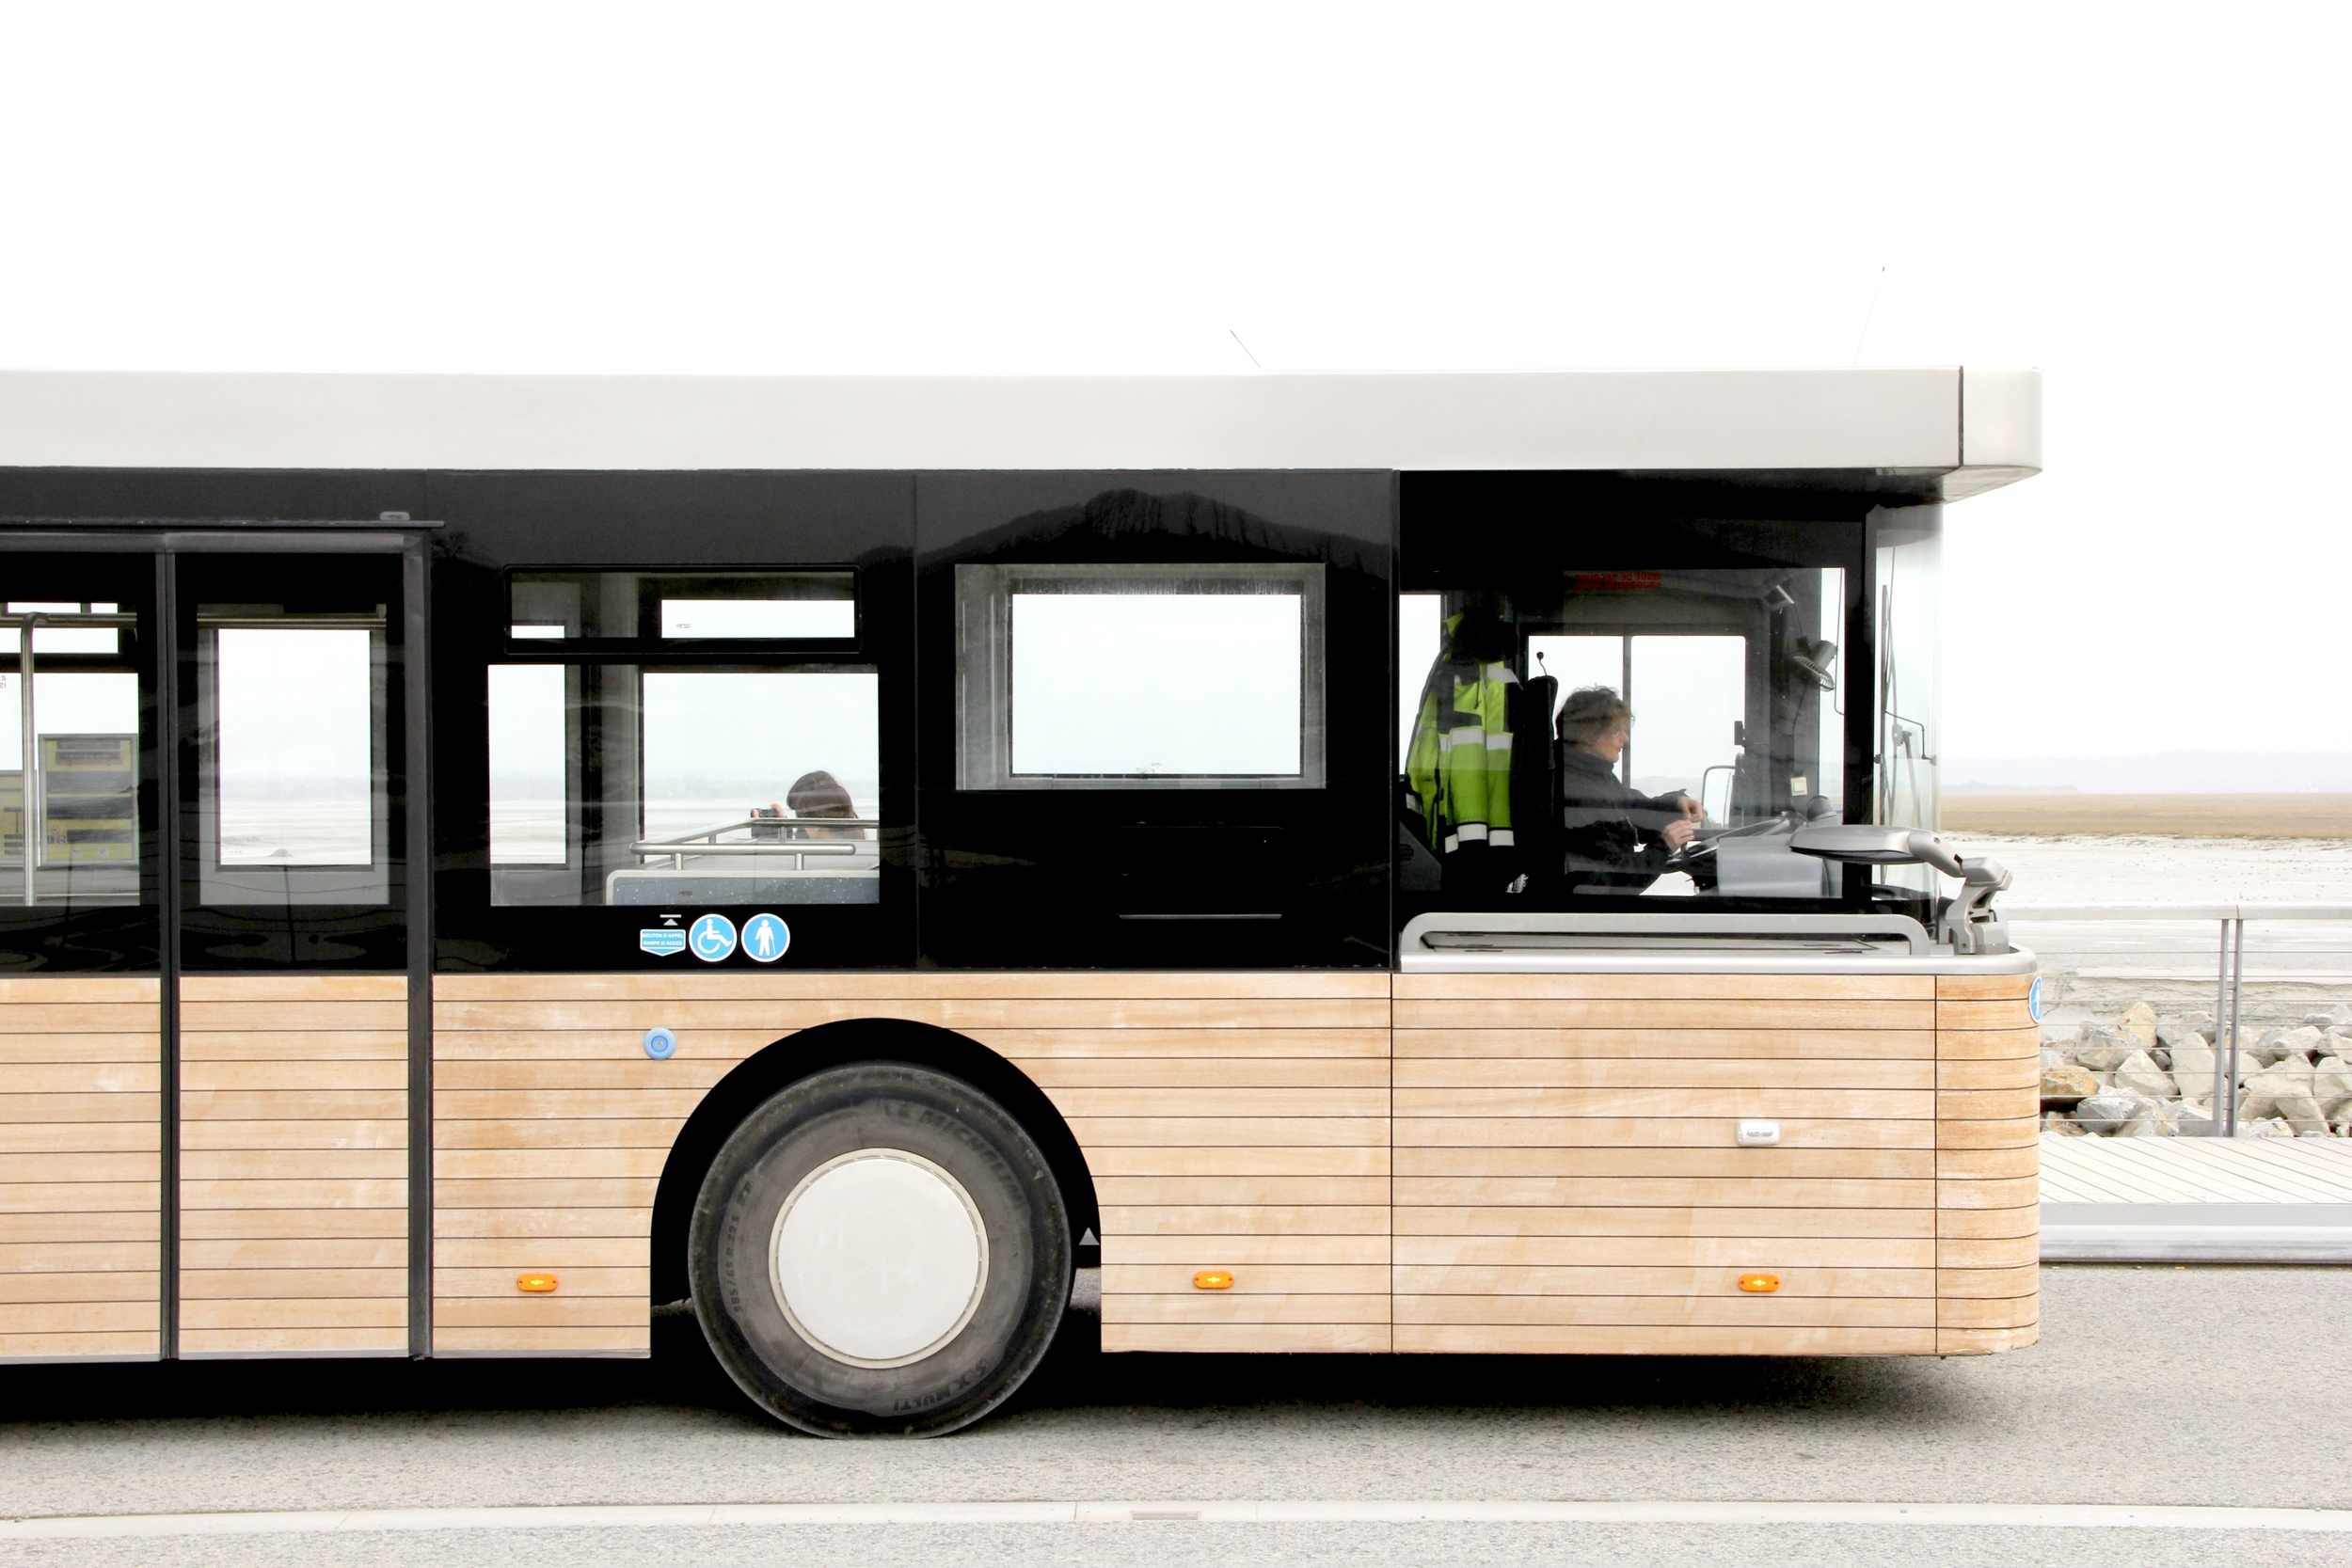 Wood paneled buses at Le Mont St Michel